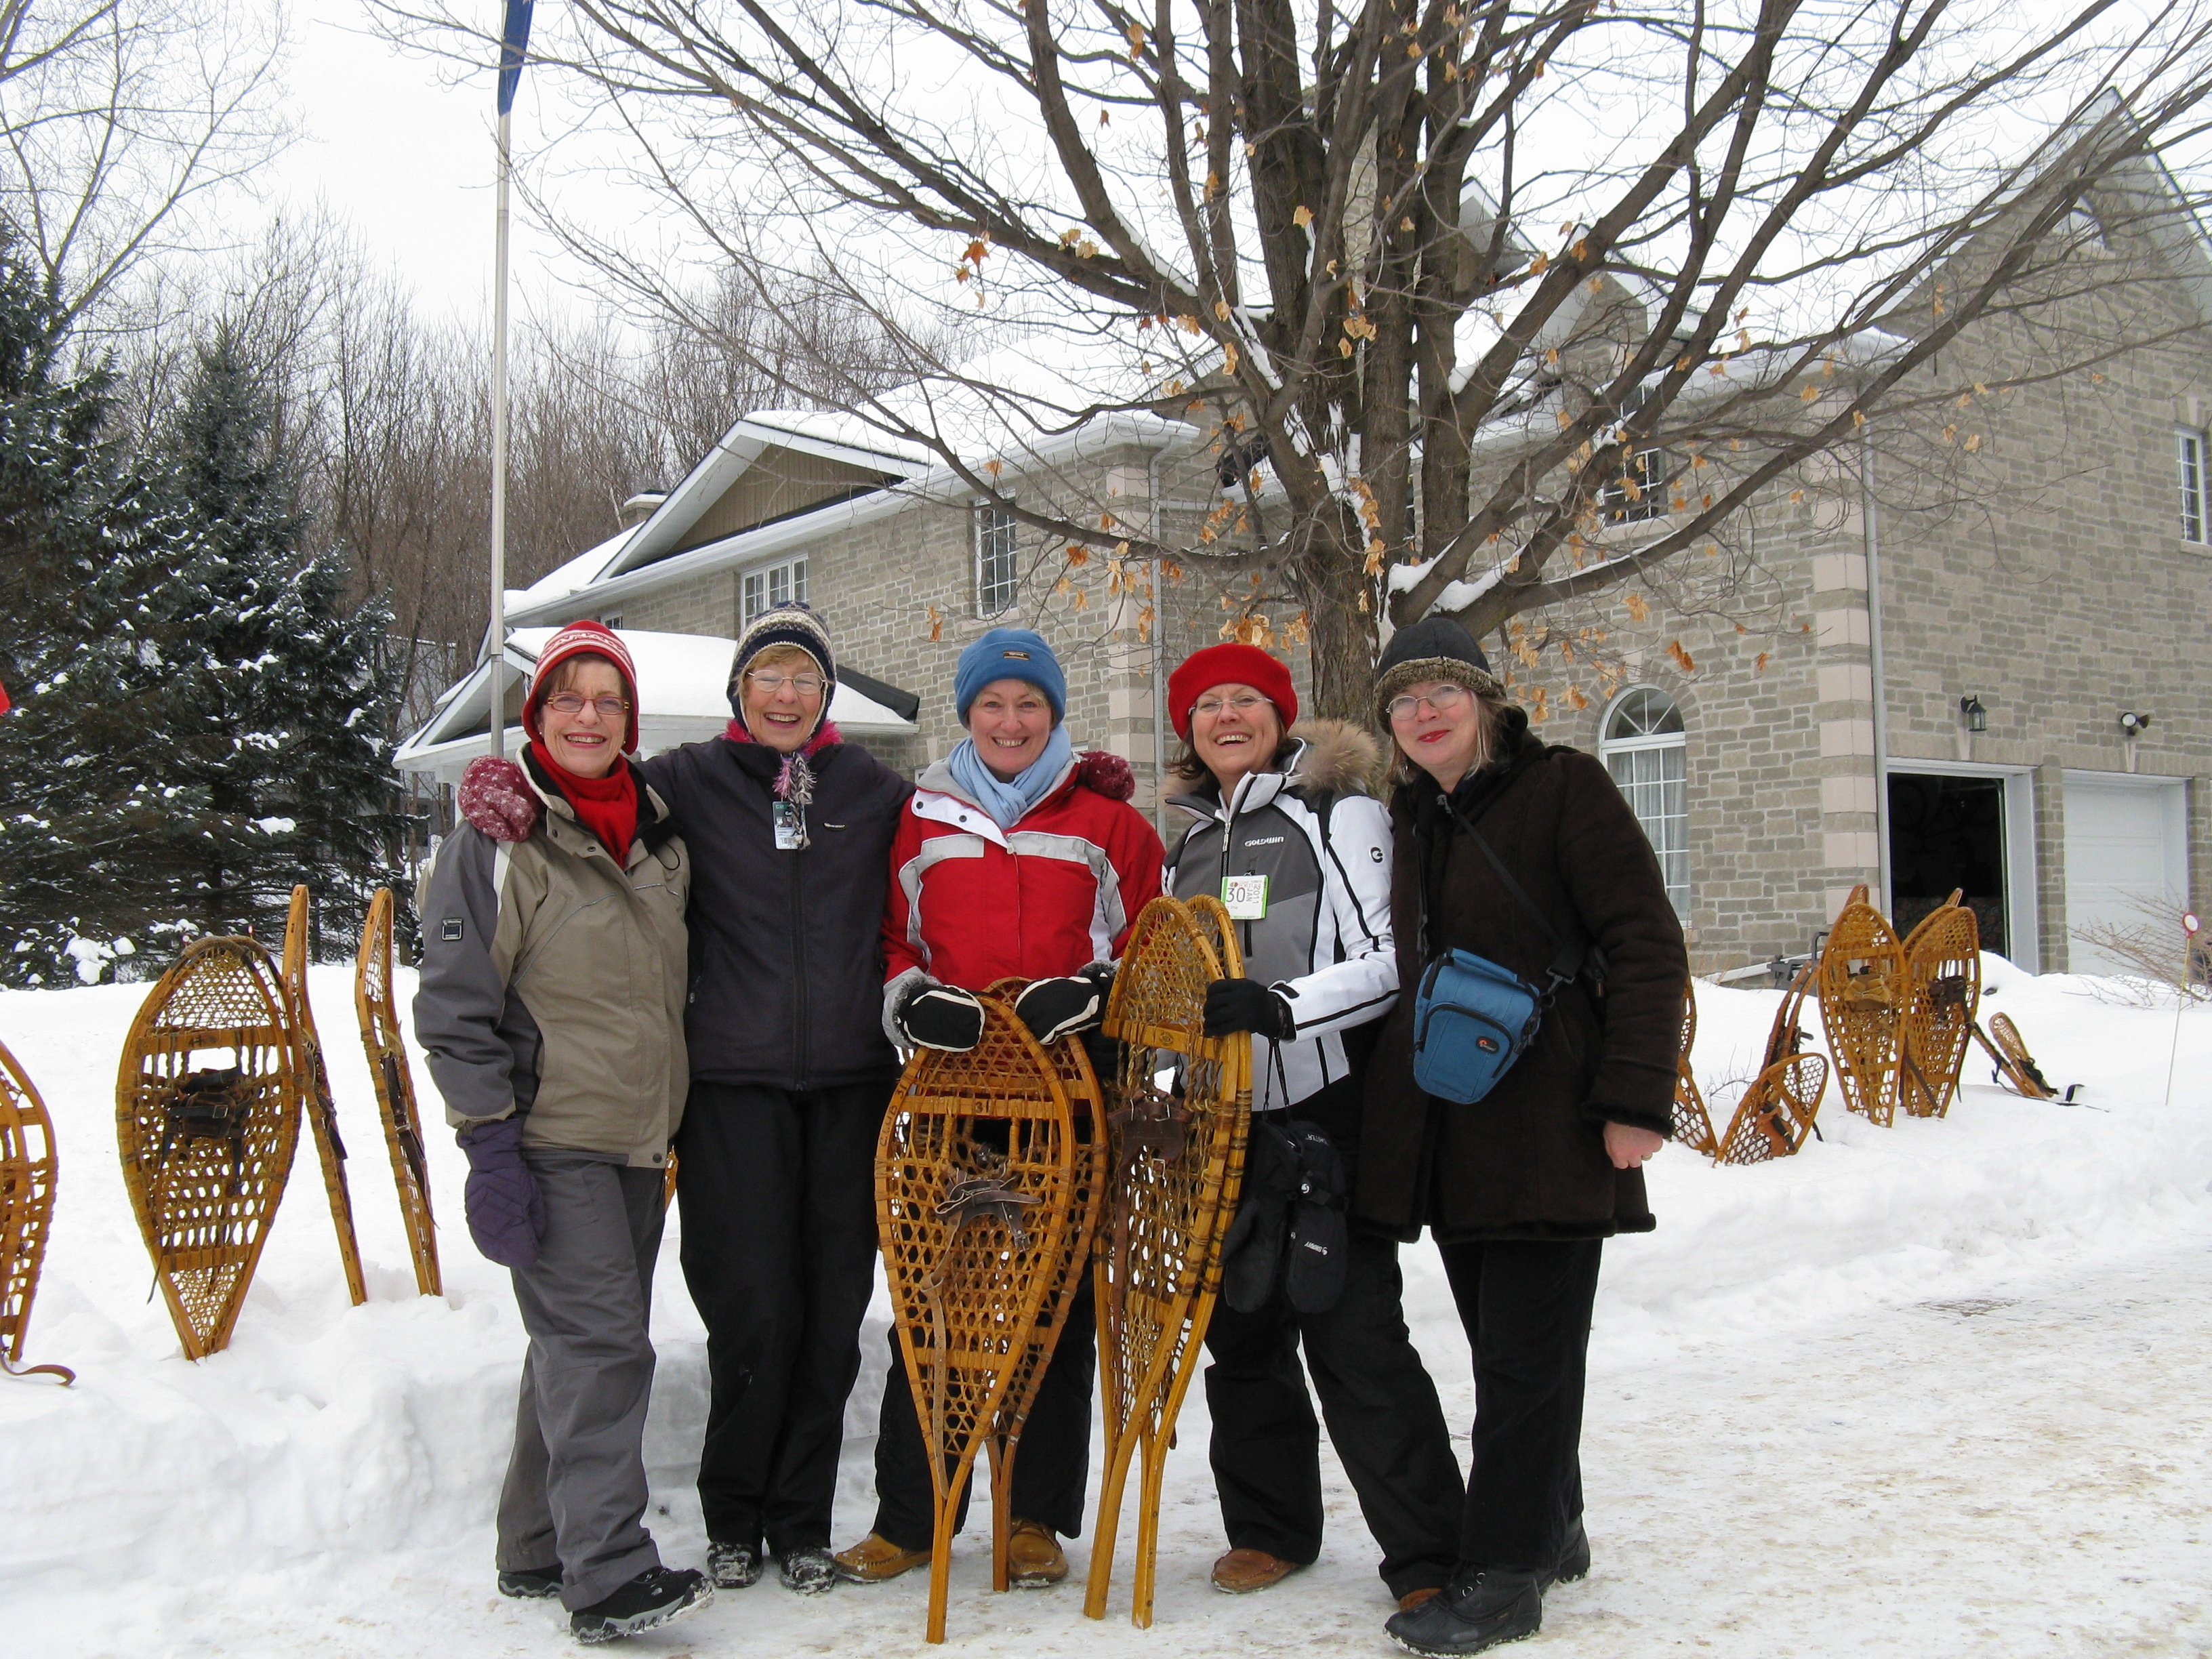 Diplomatic Hospitality snowshoeing